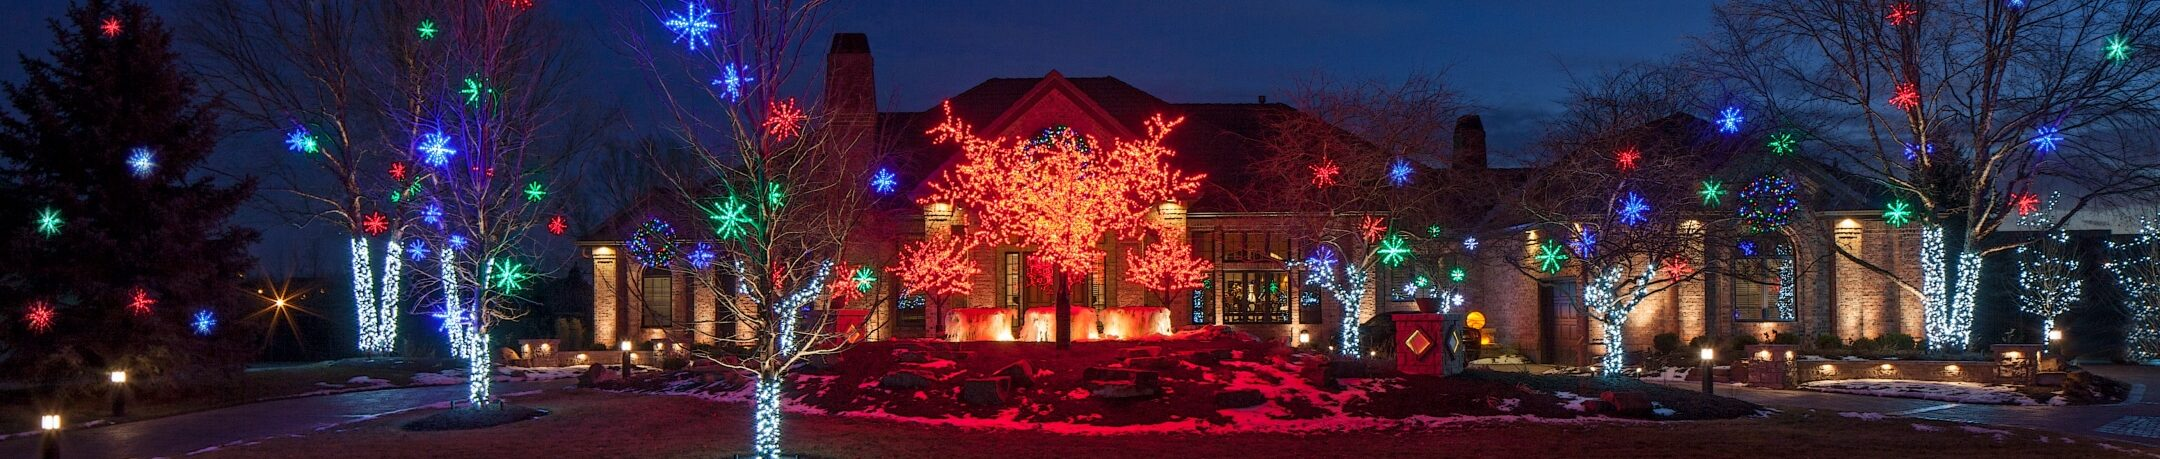 Event & Holiday Lighting